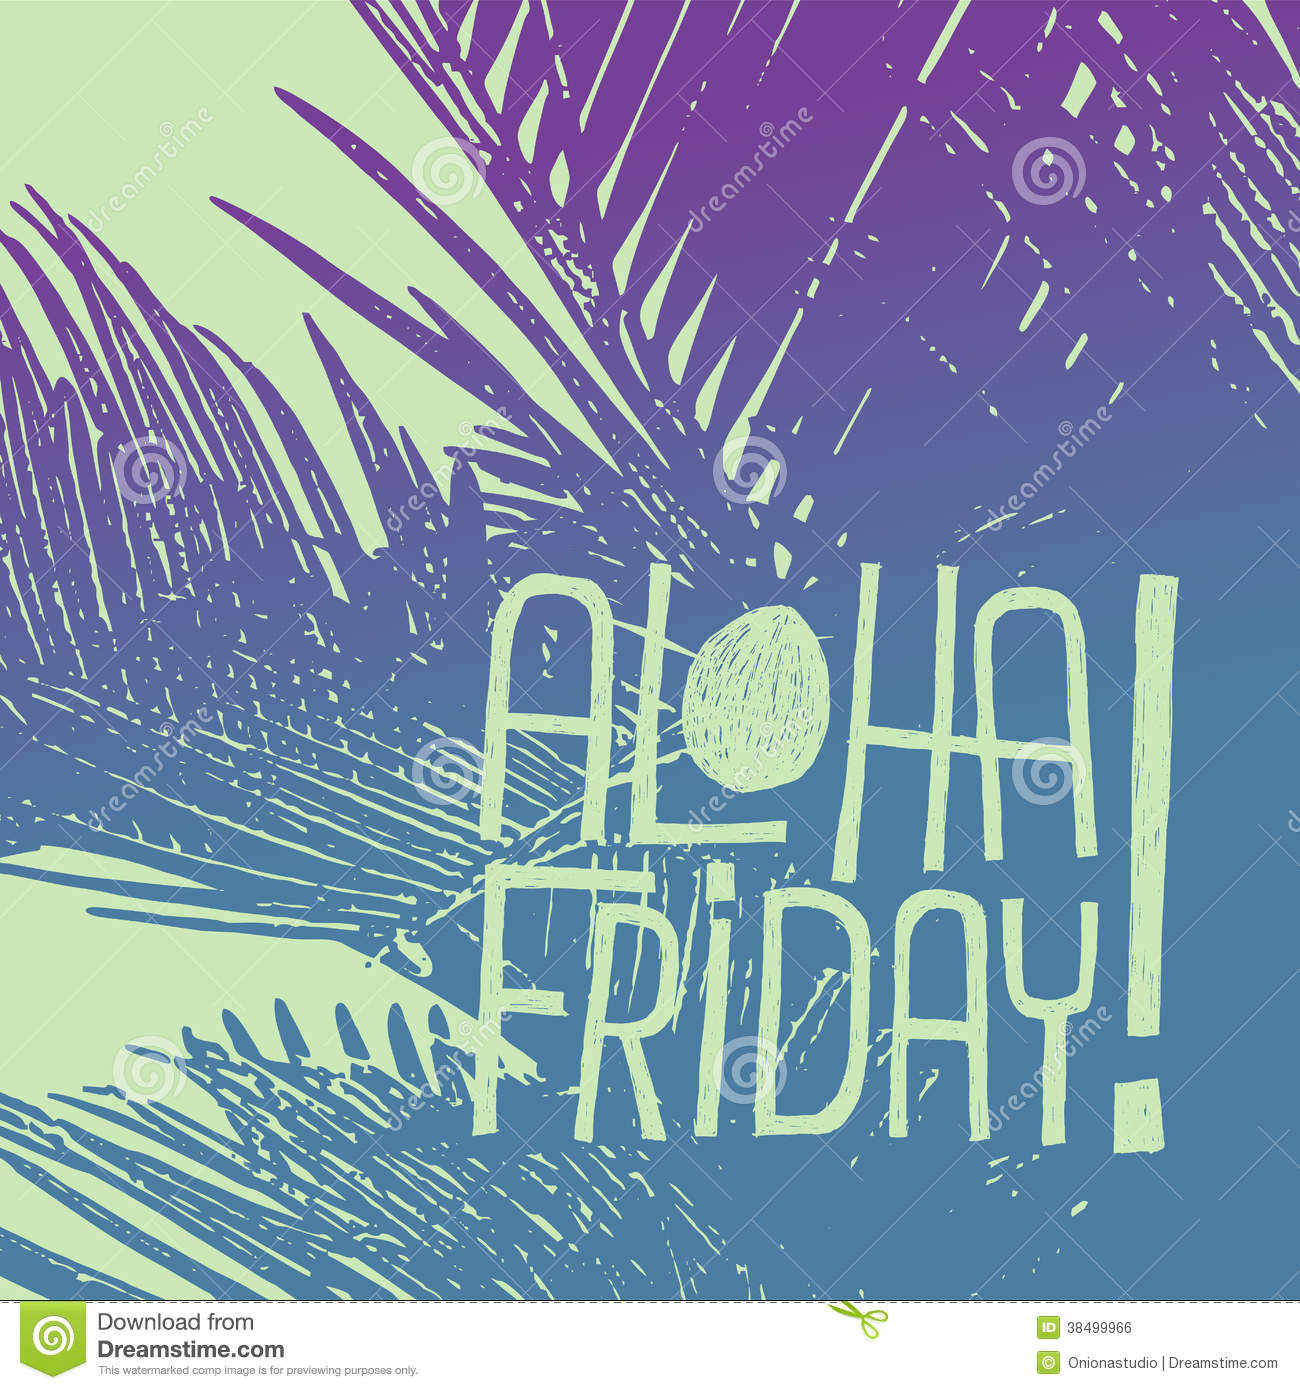 Aloha friday vector quote for friday relax stock vector aloha friday vector quote for friday relax voltagebd Choice Image